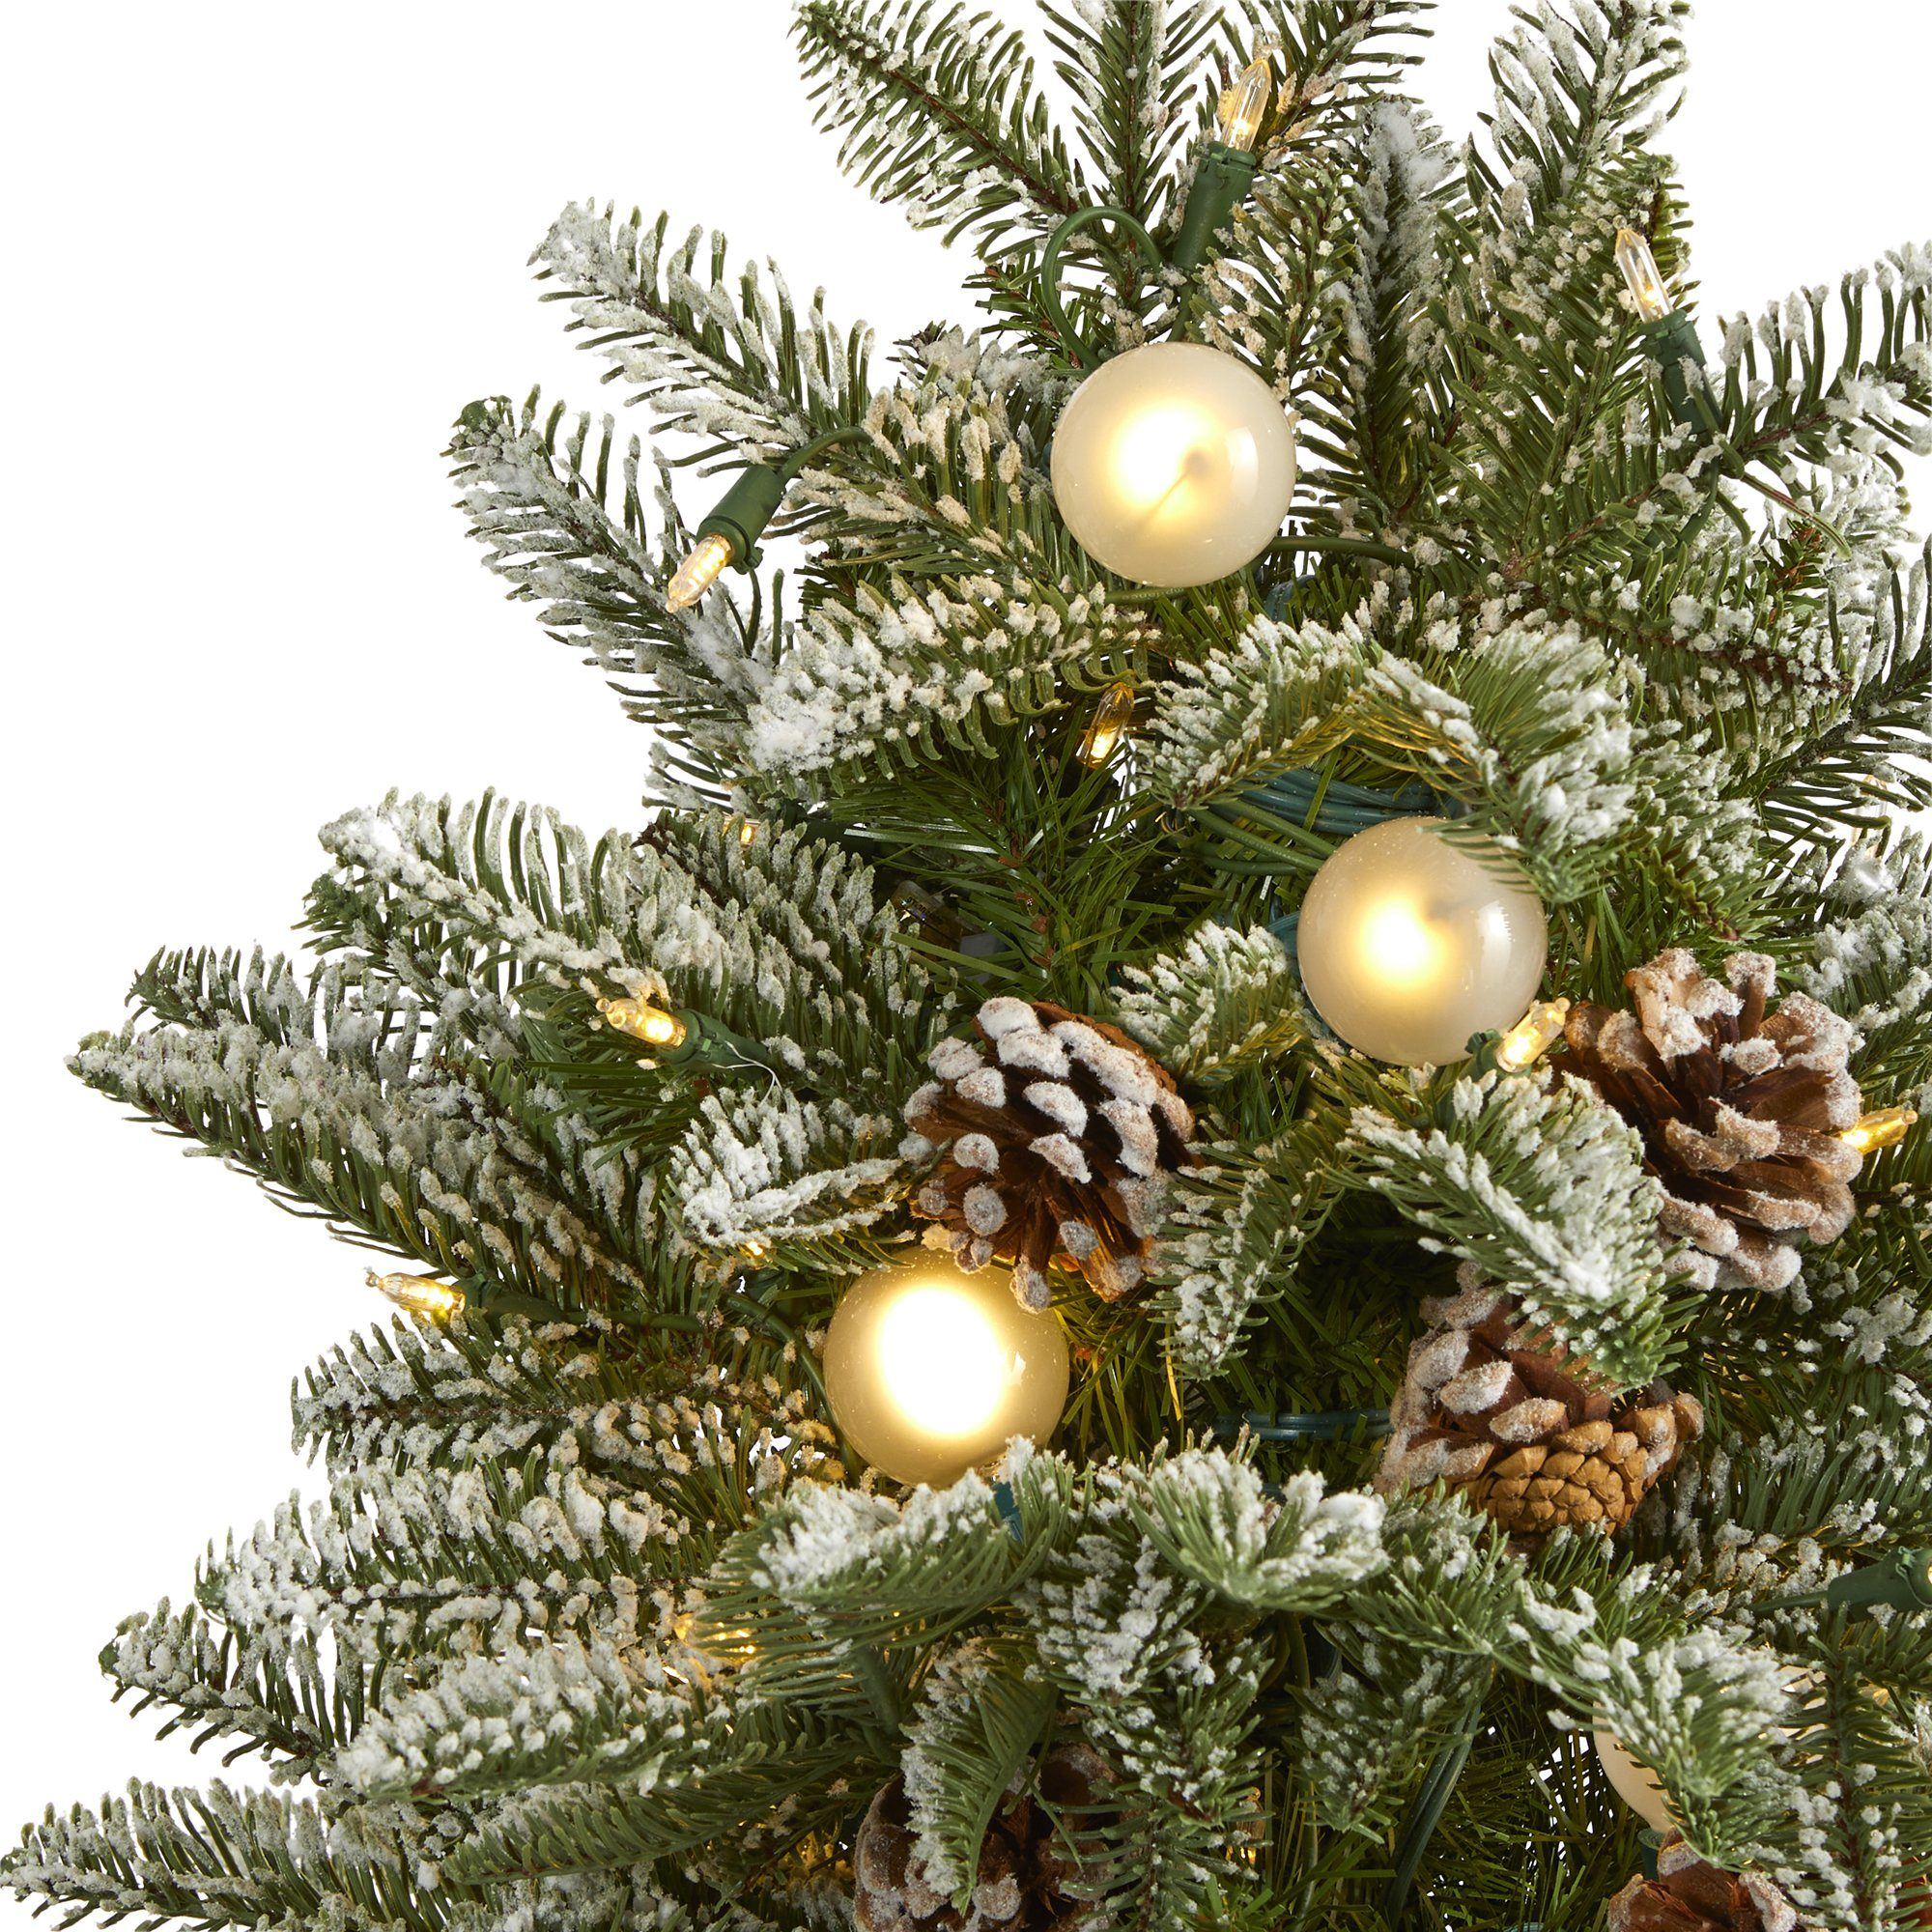 5 Flocked Whistler Mountain Fir Artificial Christmas Tree With 250 Warm White Led Lights With Instant Connect Technology 28 Globe Bulbs Pine Cones And 480 Bendable Branches Nearly Natural